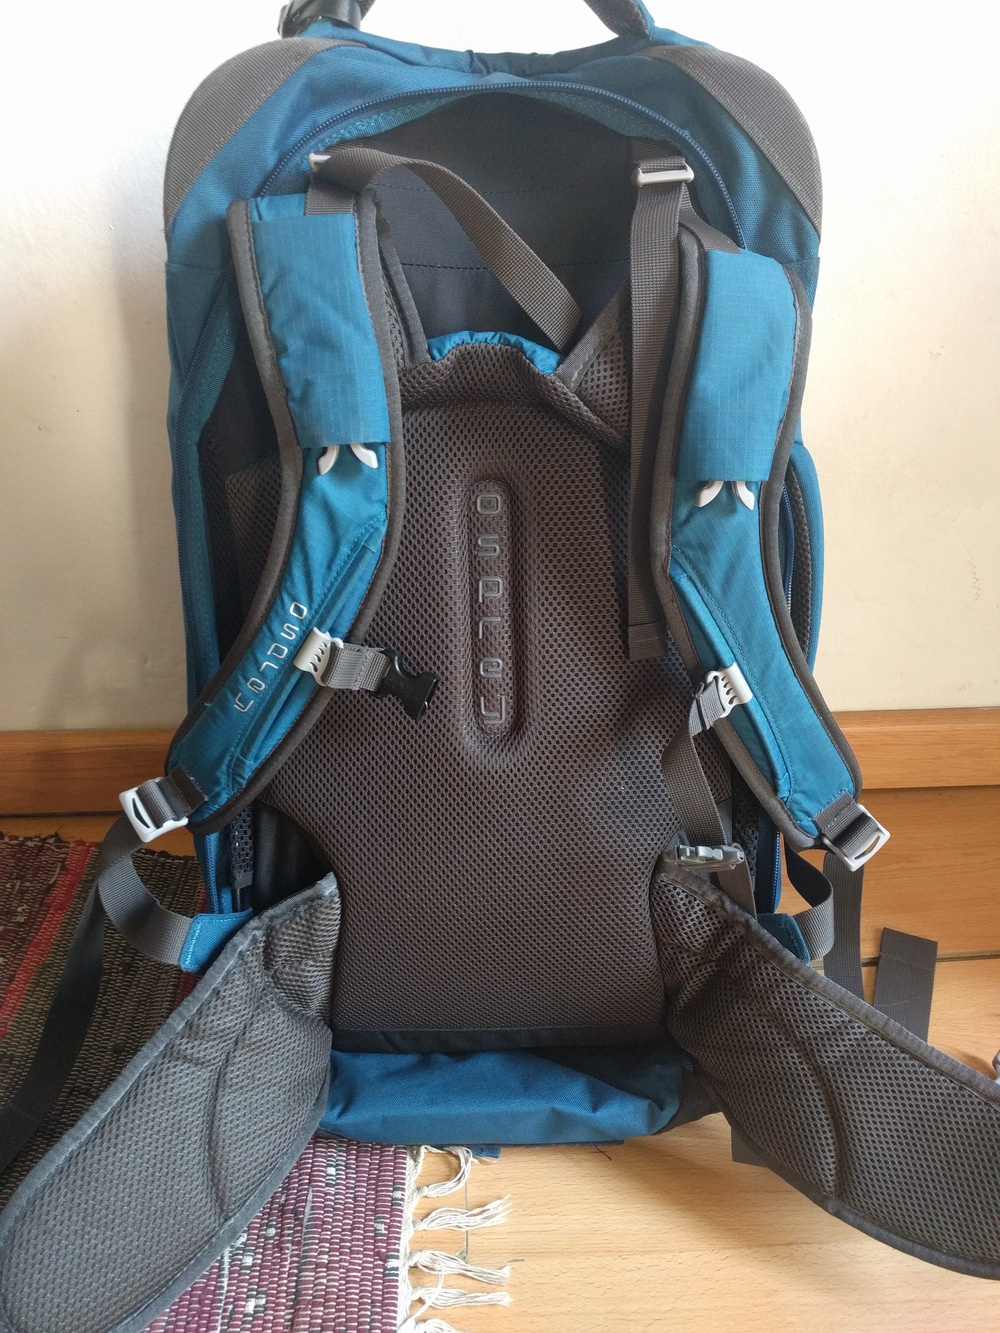 Tortuga Travel Backpack vs Osprey Farpoint 55 Travel Pack 5